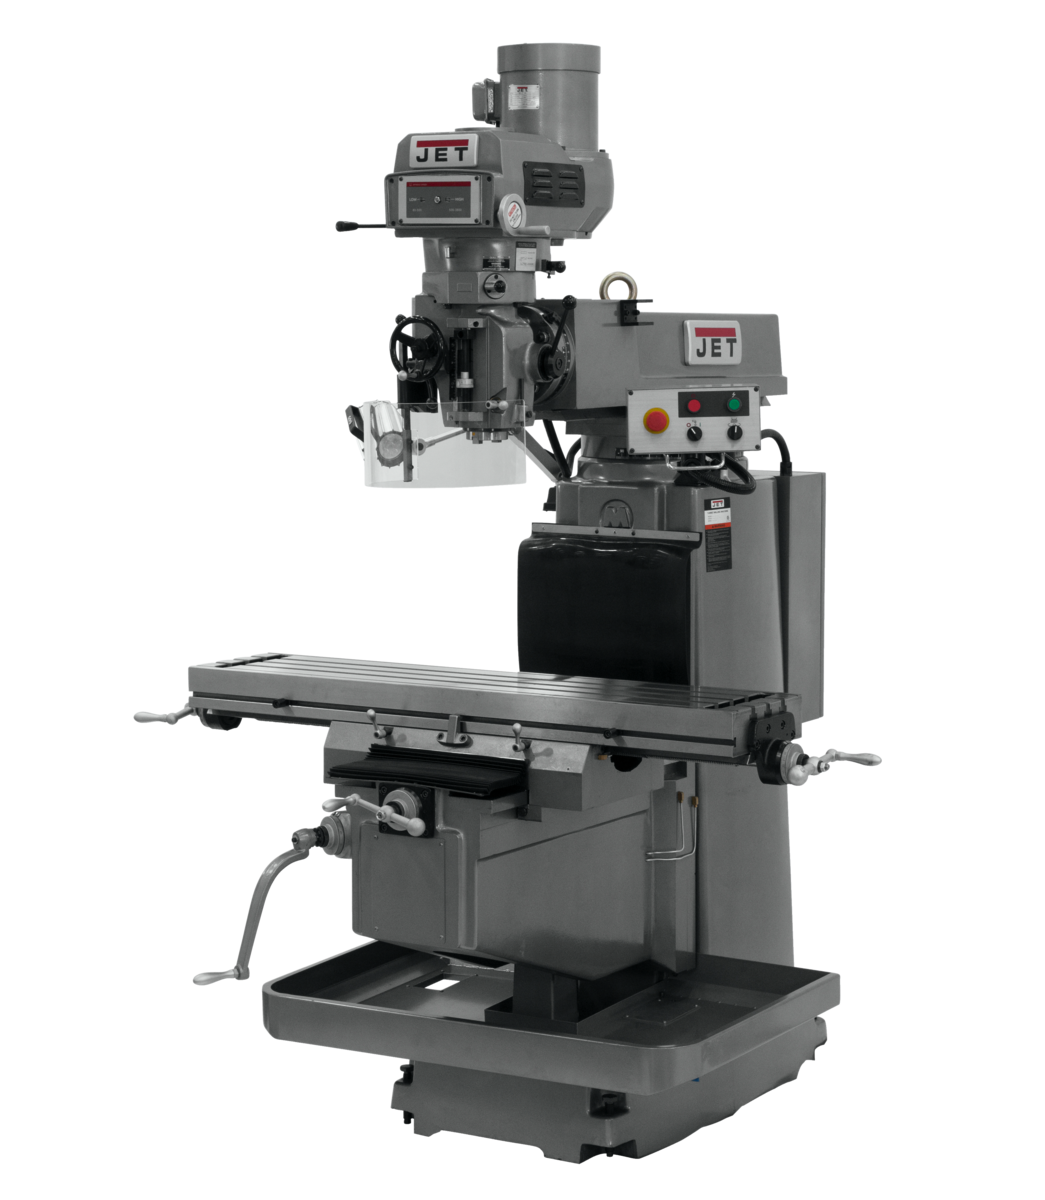 JTM-1254VS with 3-Axis ACU-RITE G-2 MILLPOWER CNC with Air Power Drawbar